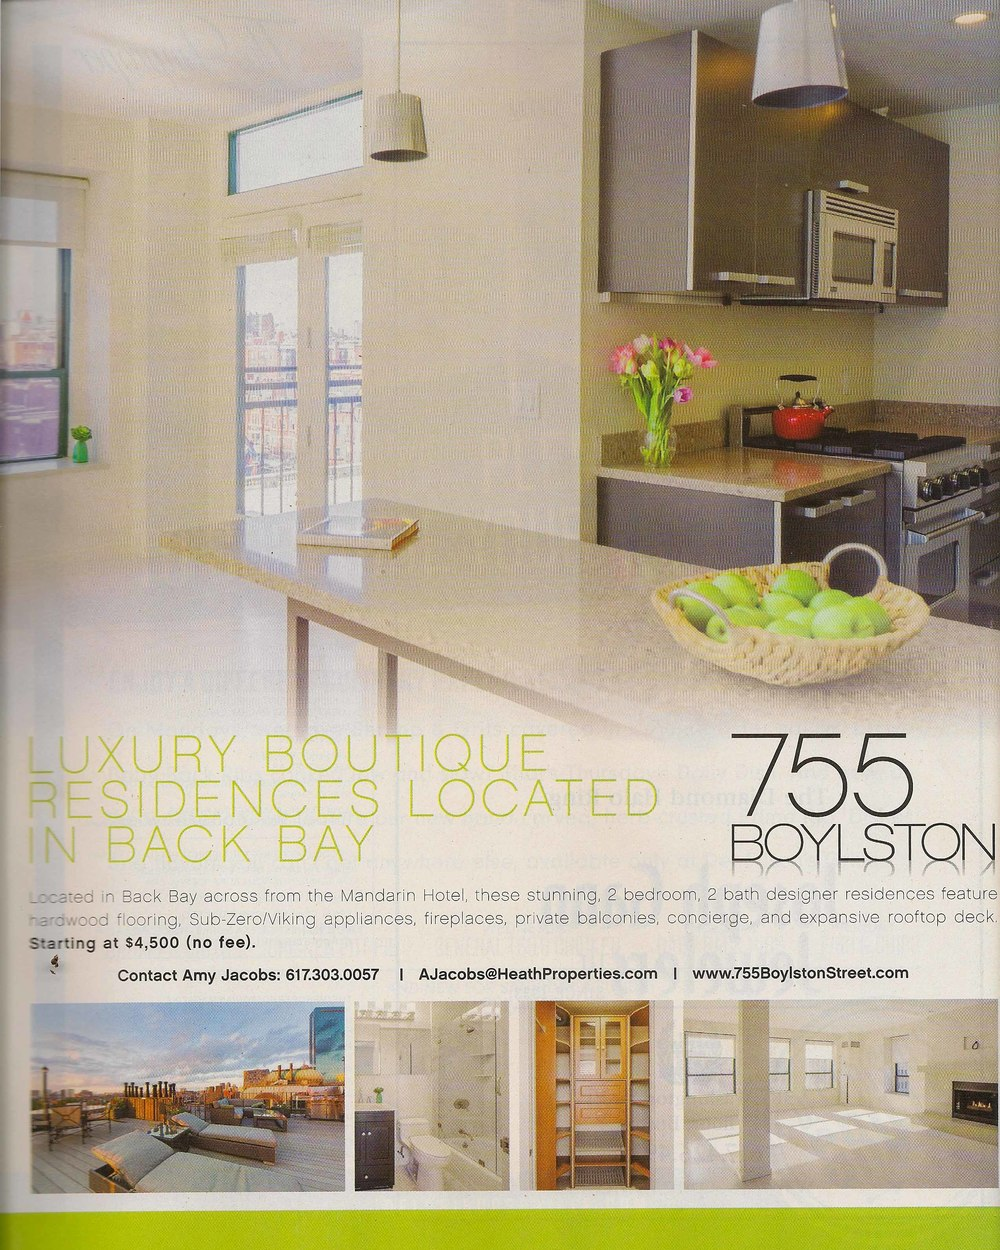 Scan of full page advertisement from Improper Bostonian, which includes the main image at the top and a few other images from the shoot at the bottom.